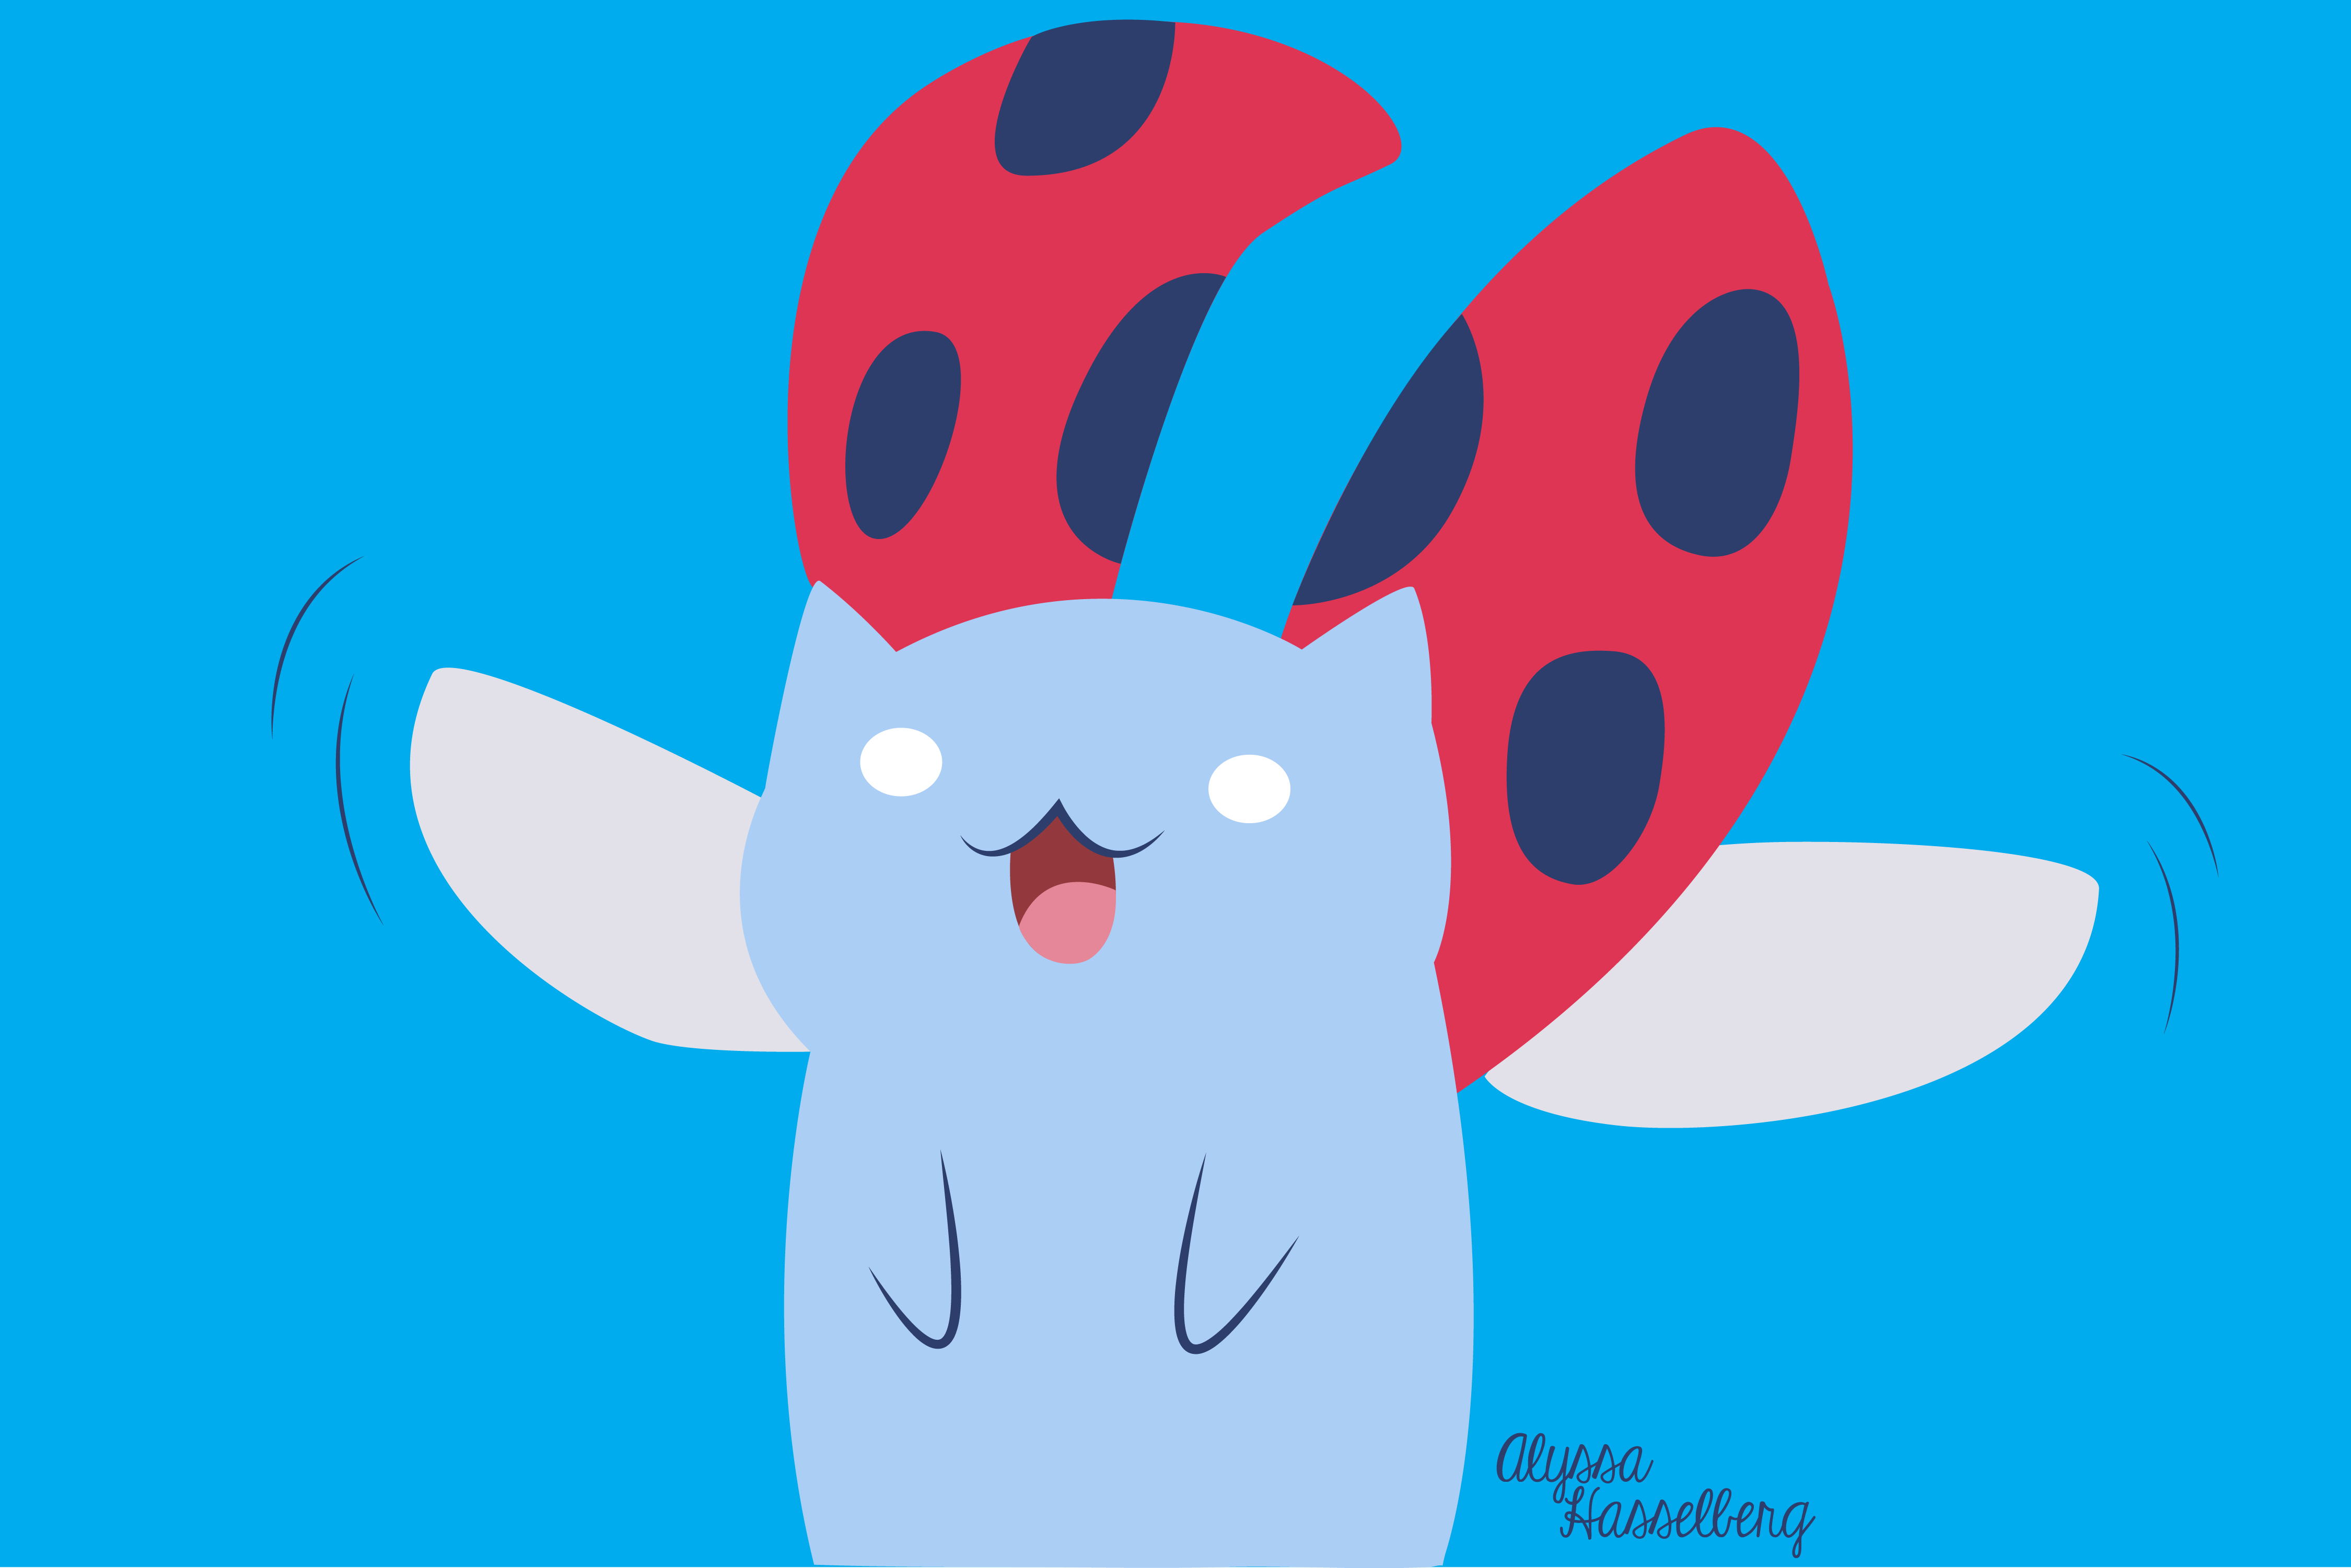 Flying Catbug By Thegreatdawn Cartoon Hangover My Little Wallpaper The Wallpaper Source That Credits Artists